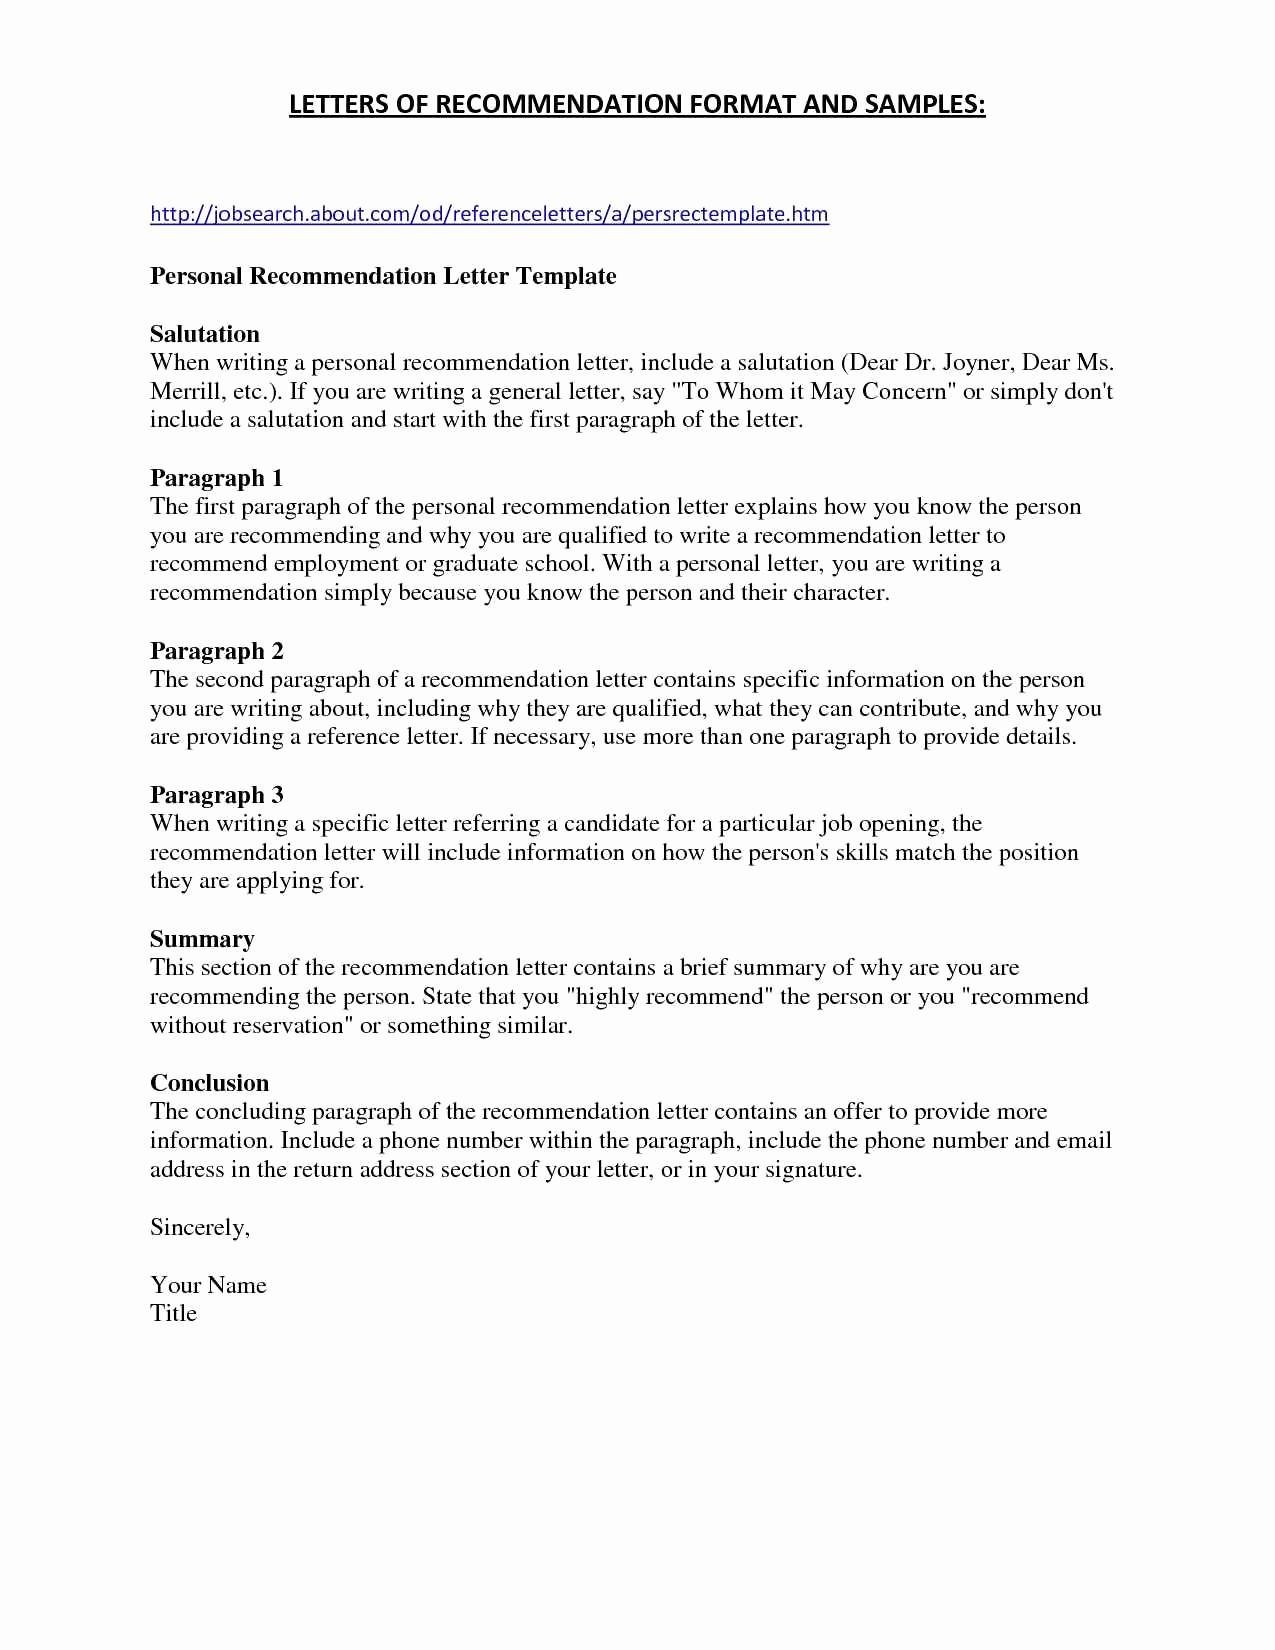 employment verification letter template microsoft example-employment verification letter template microsoft 3-f